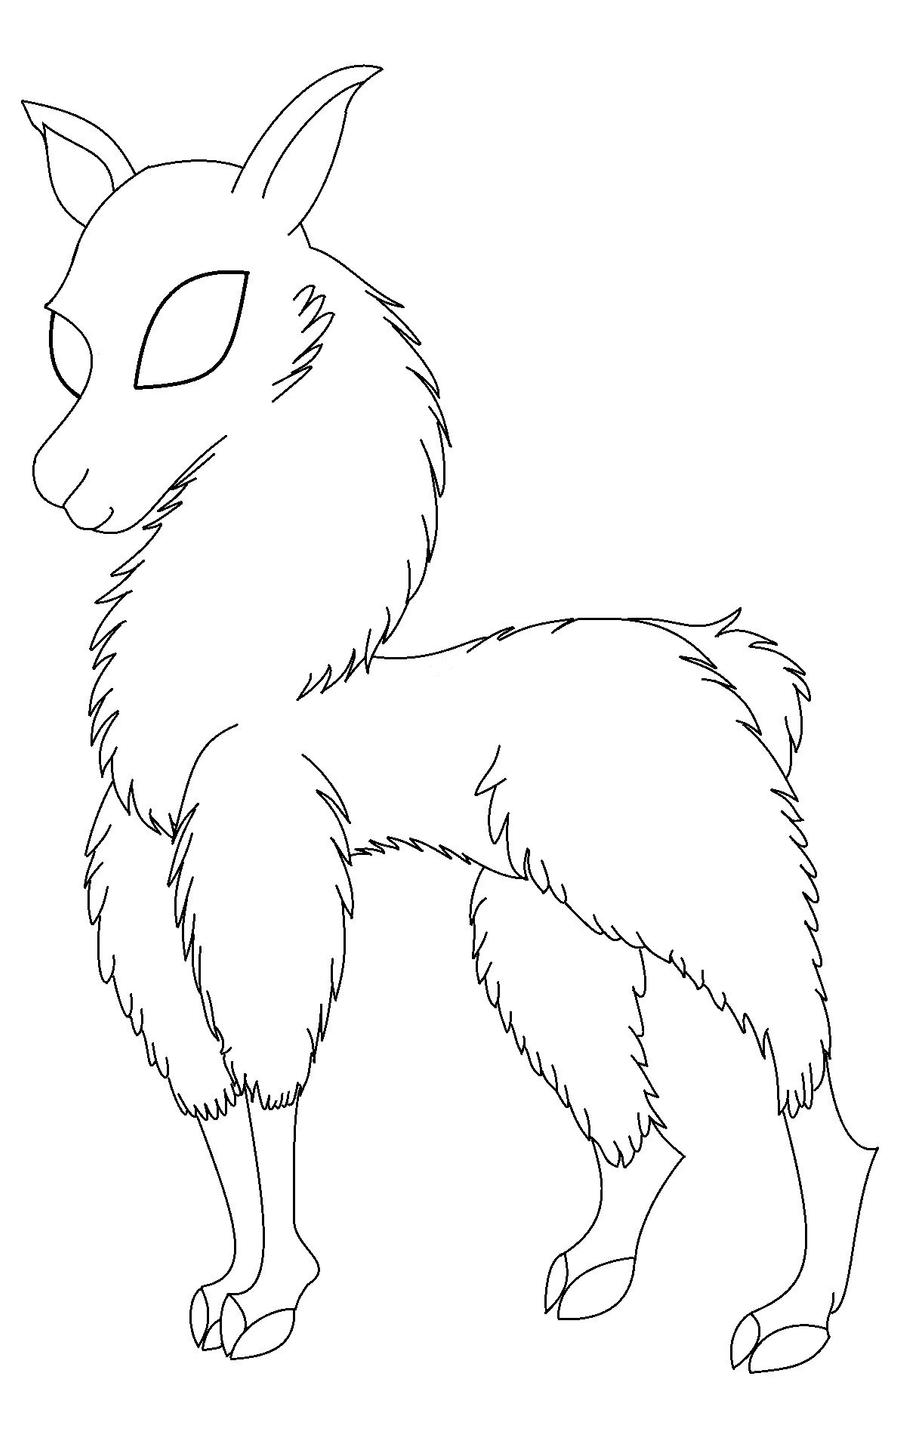 Line Drawing Llama : Cartoon llama lineart by savannaegoth on deviantart